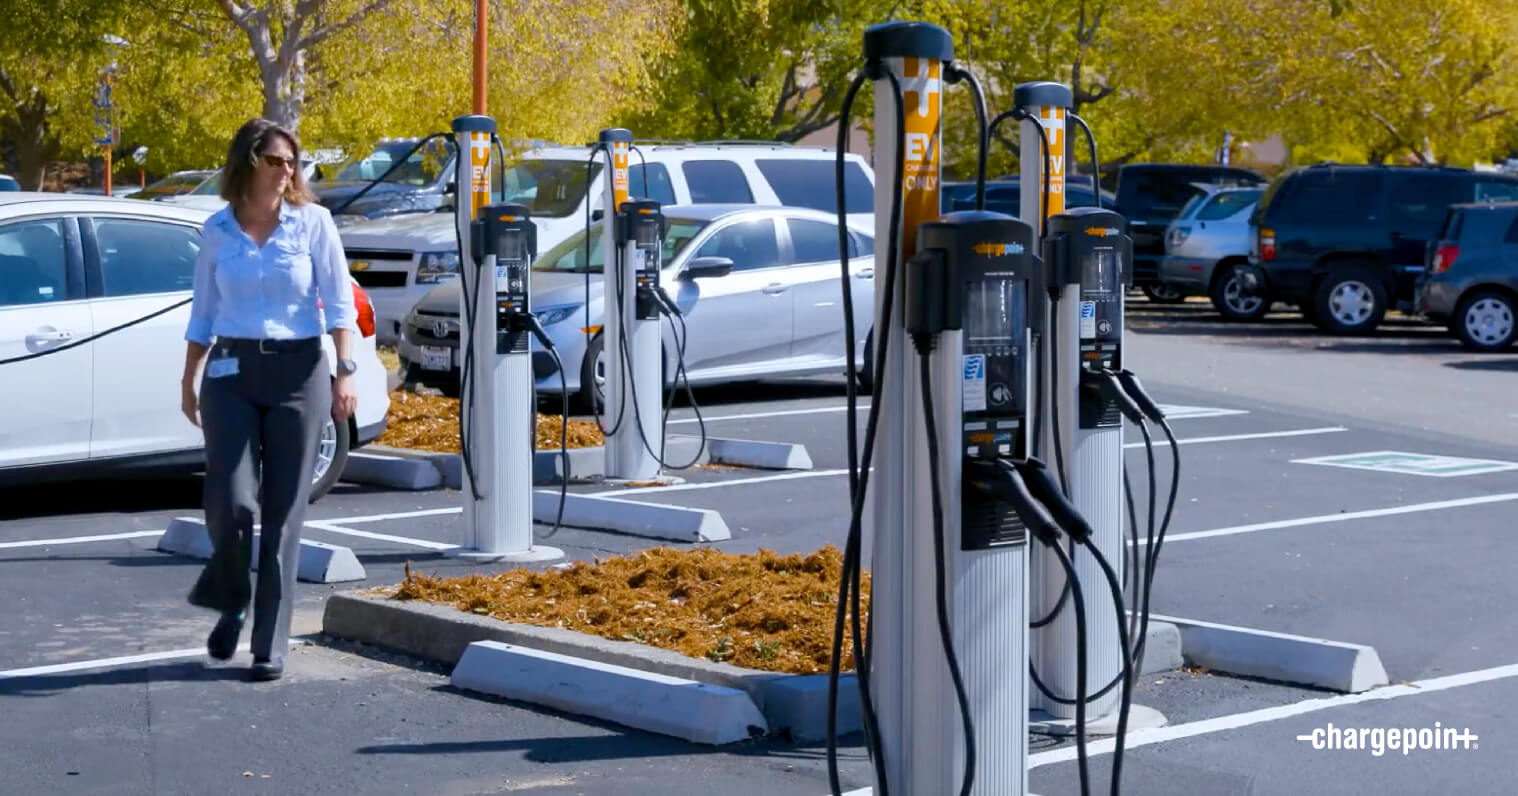 ChargePoint solutions in Marin County, California